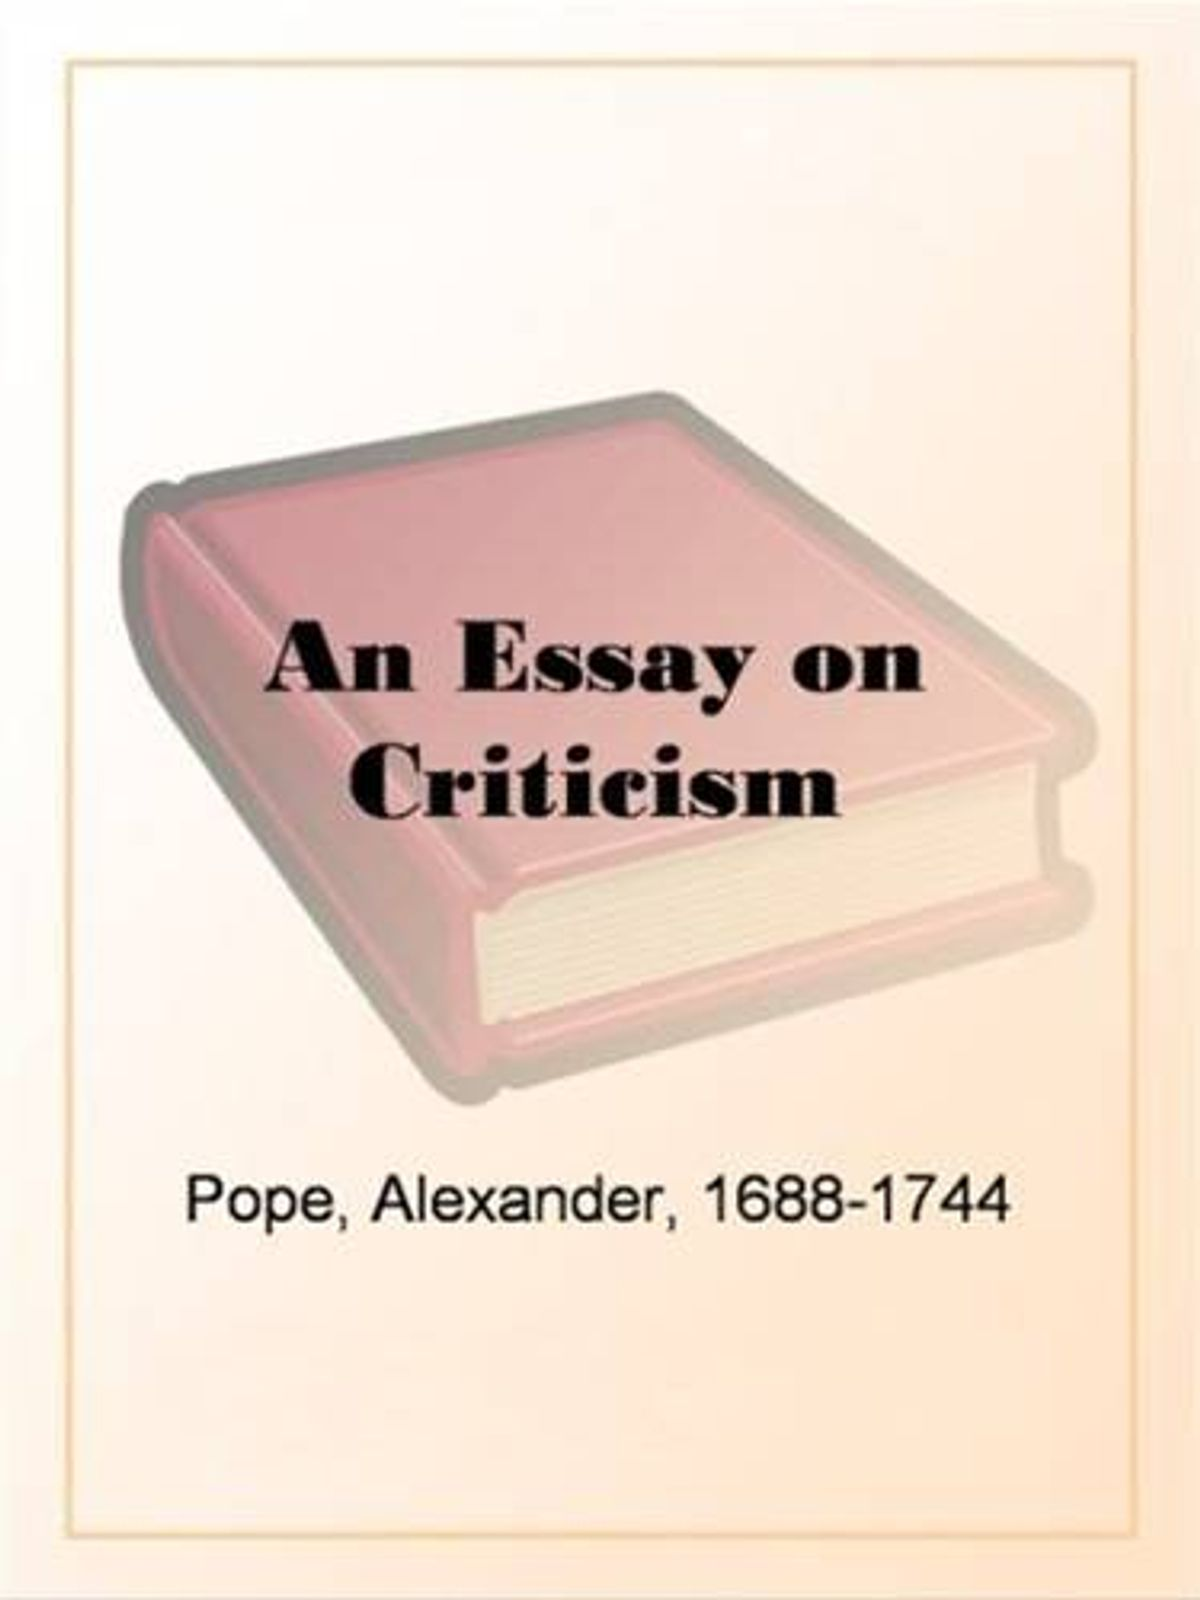 008 An Essay On Criticism Sensational Lines 233 To 415 Part 3 Analysis Pdf Full